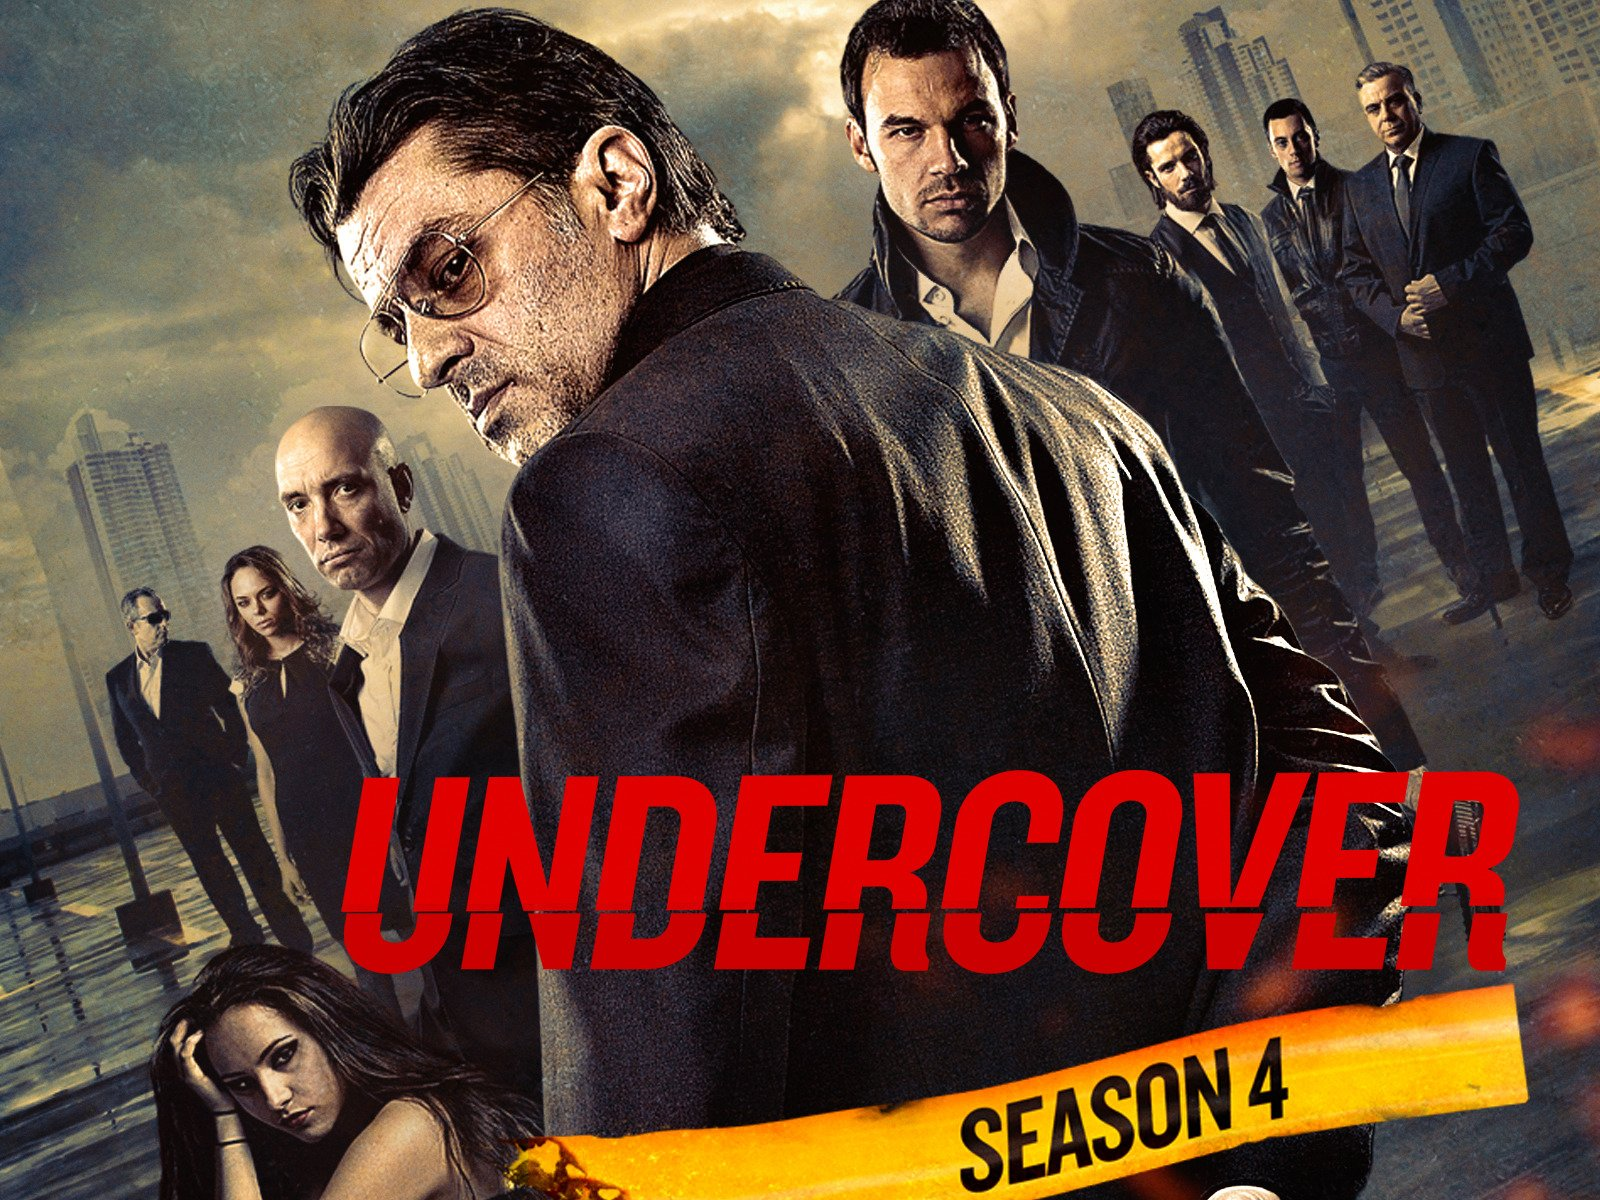 Undercover (ENG SUBTITLED) - Season 4